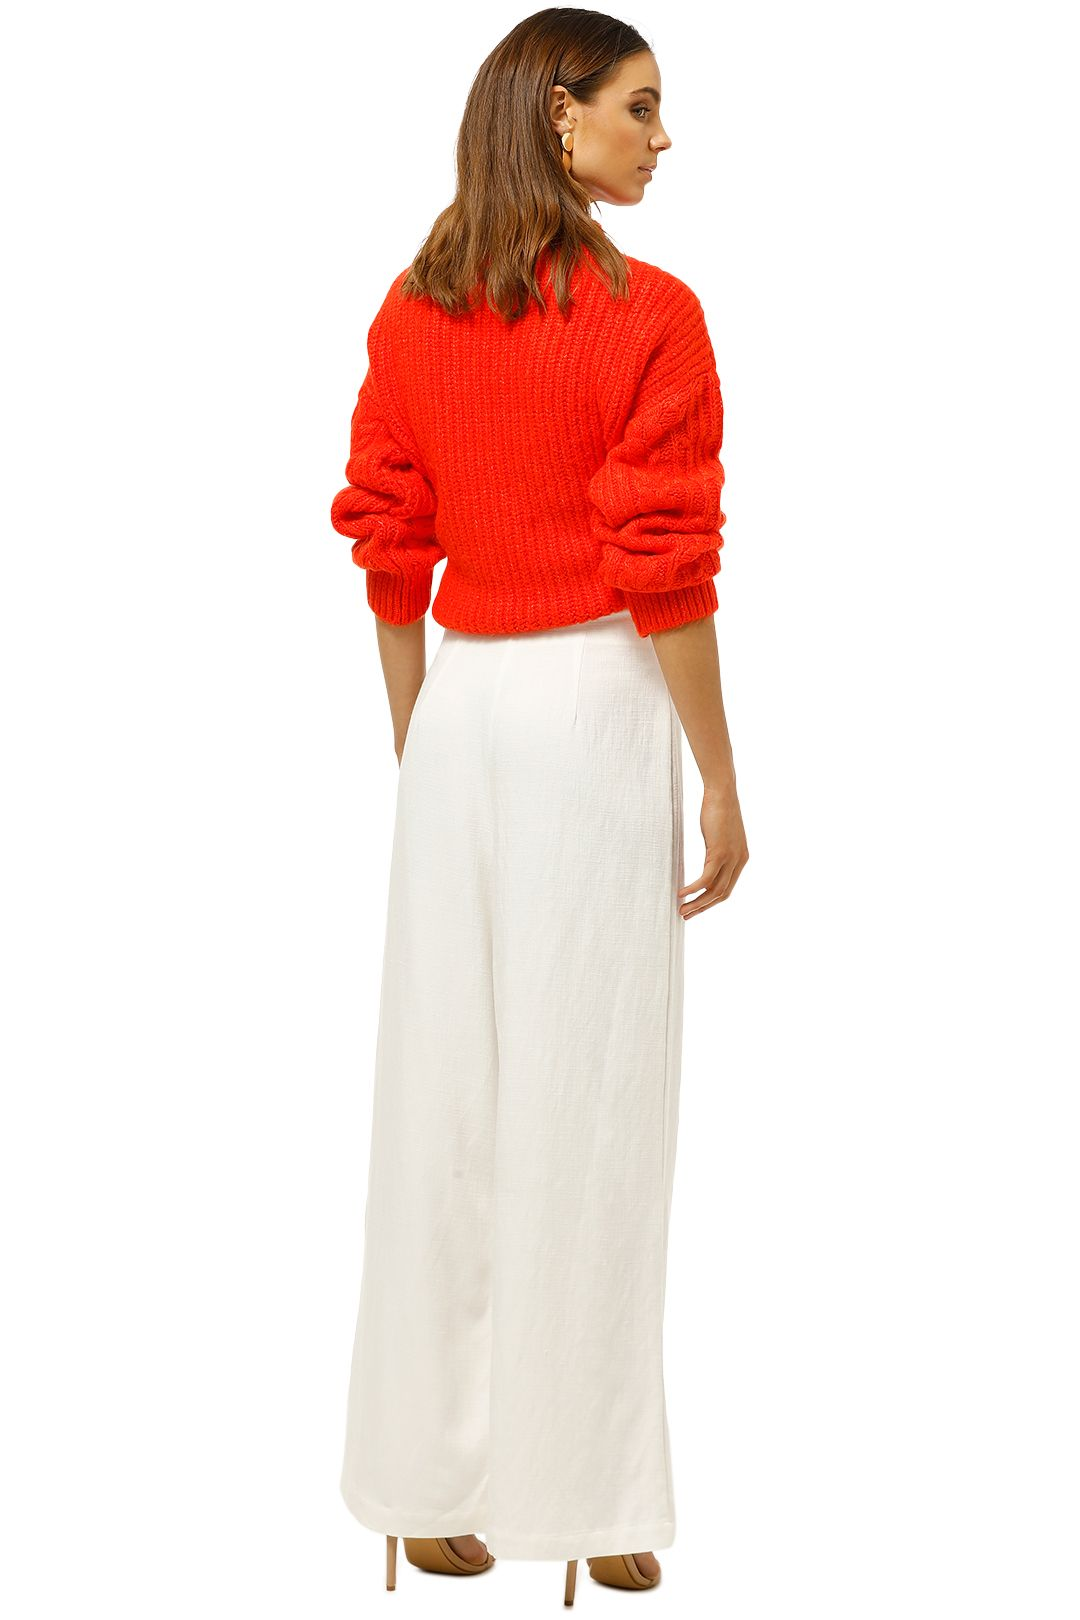 CMEO-Collective-Collisions-Pant-Ivory-Back